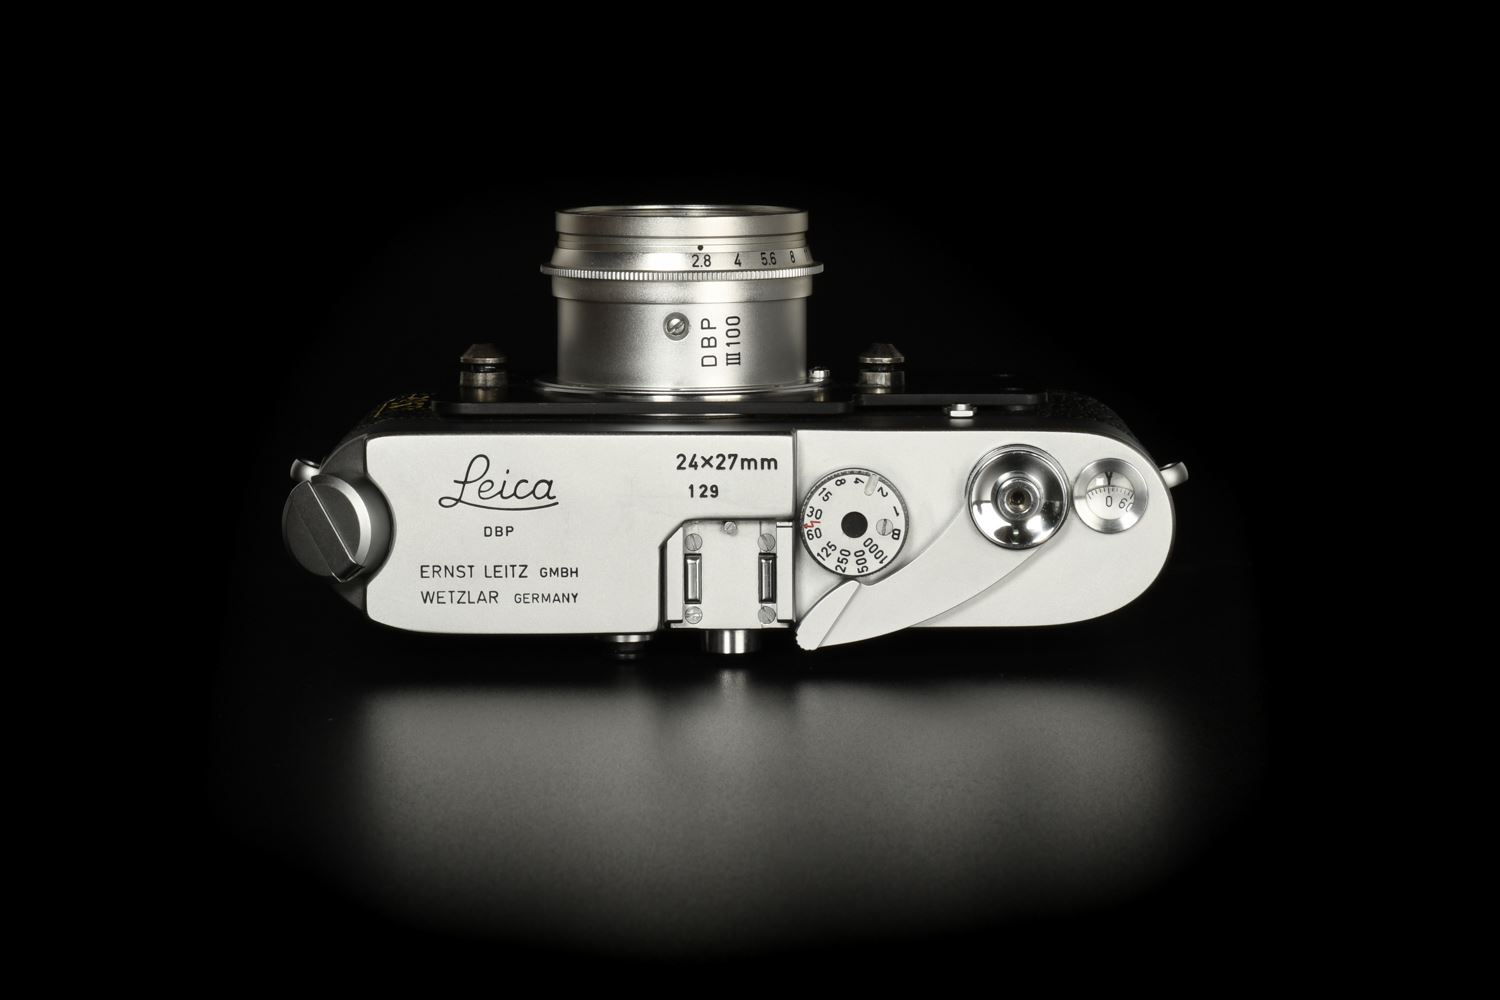 Picture of Leica Mda Post 24x27mm Format with Summaron 35mm f/2.8